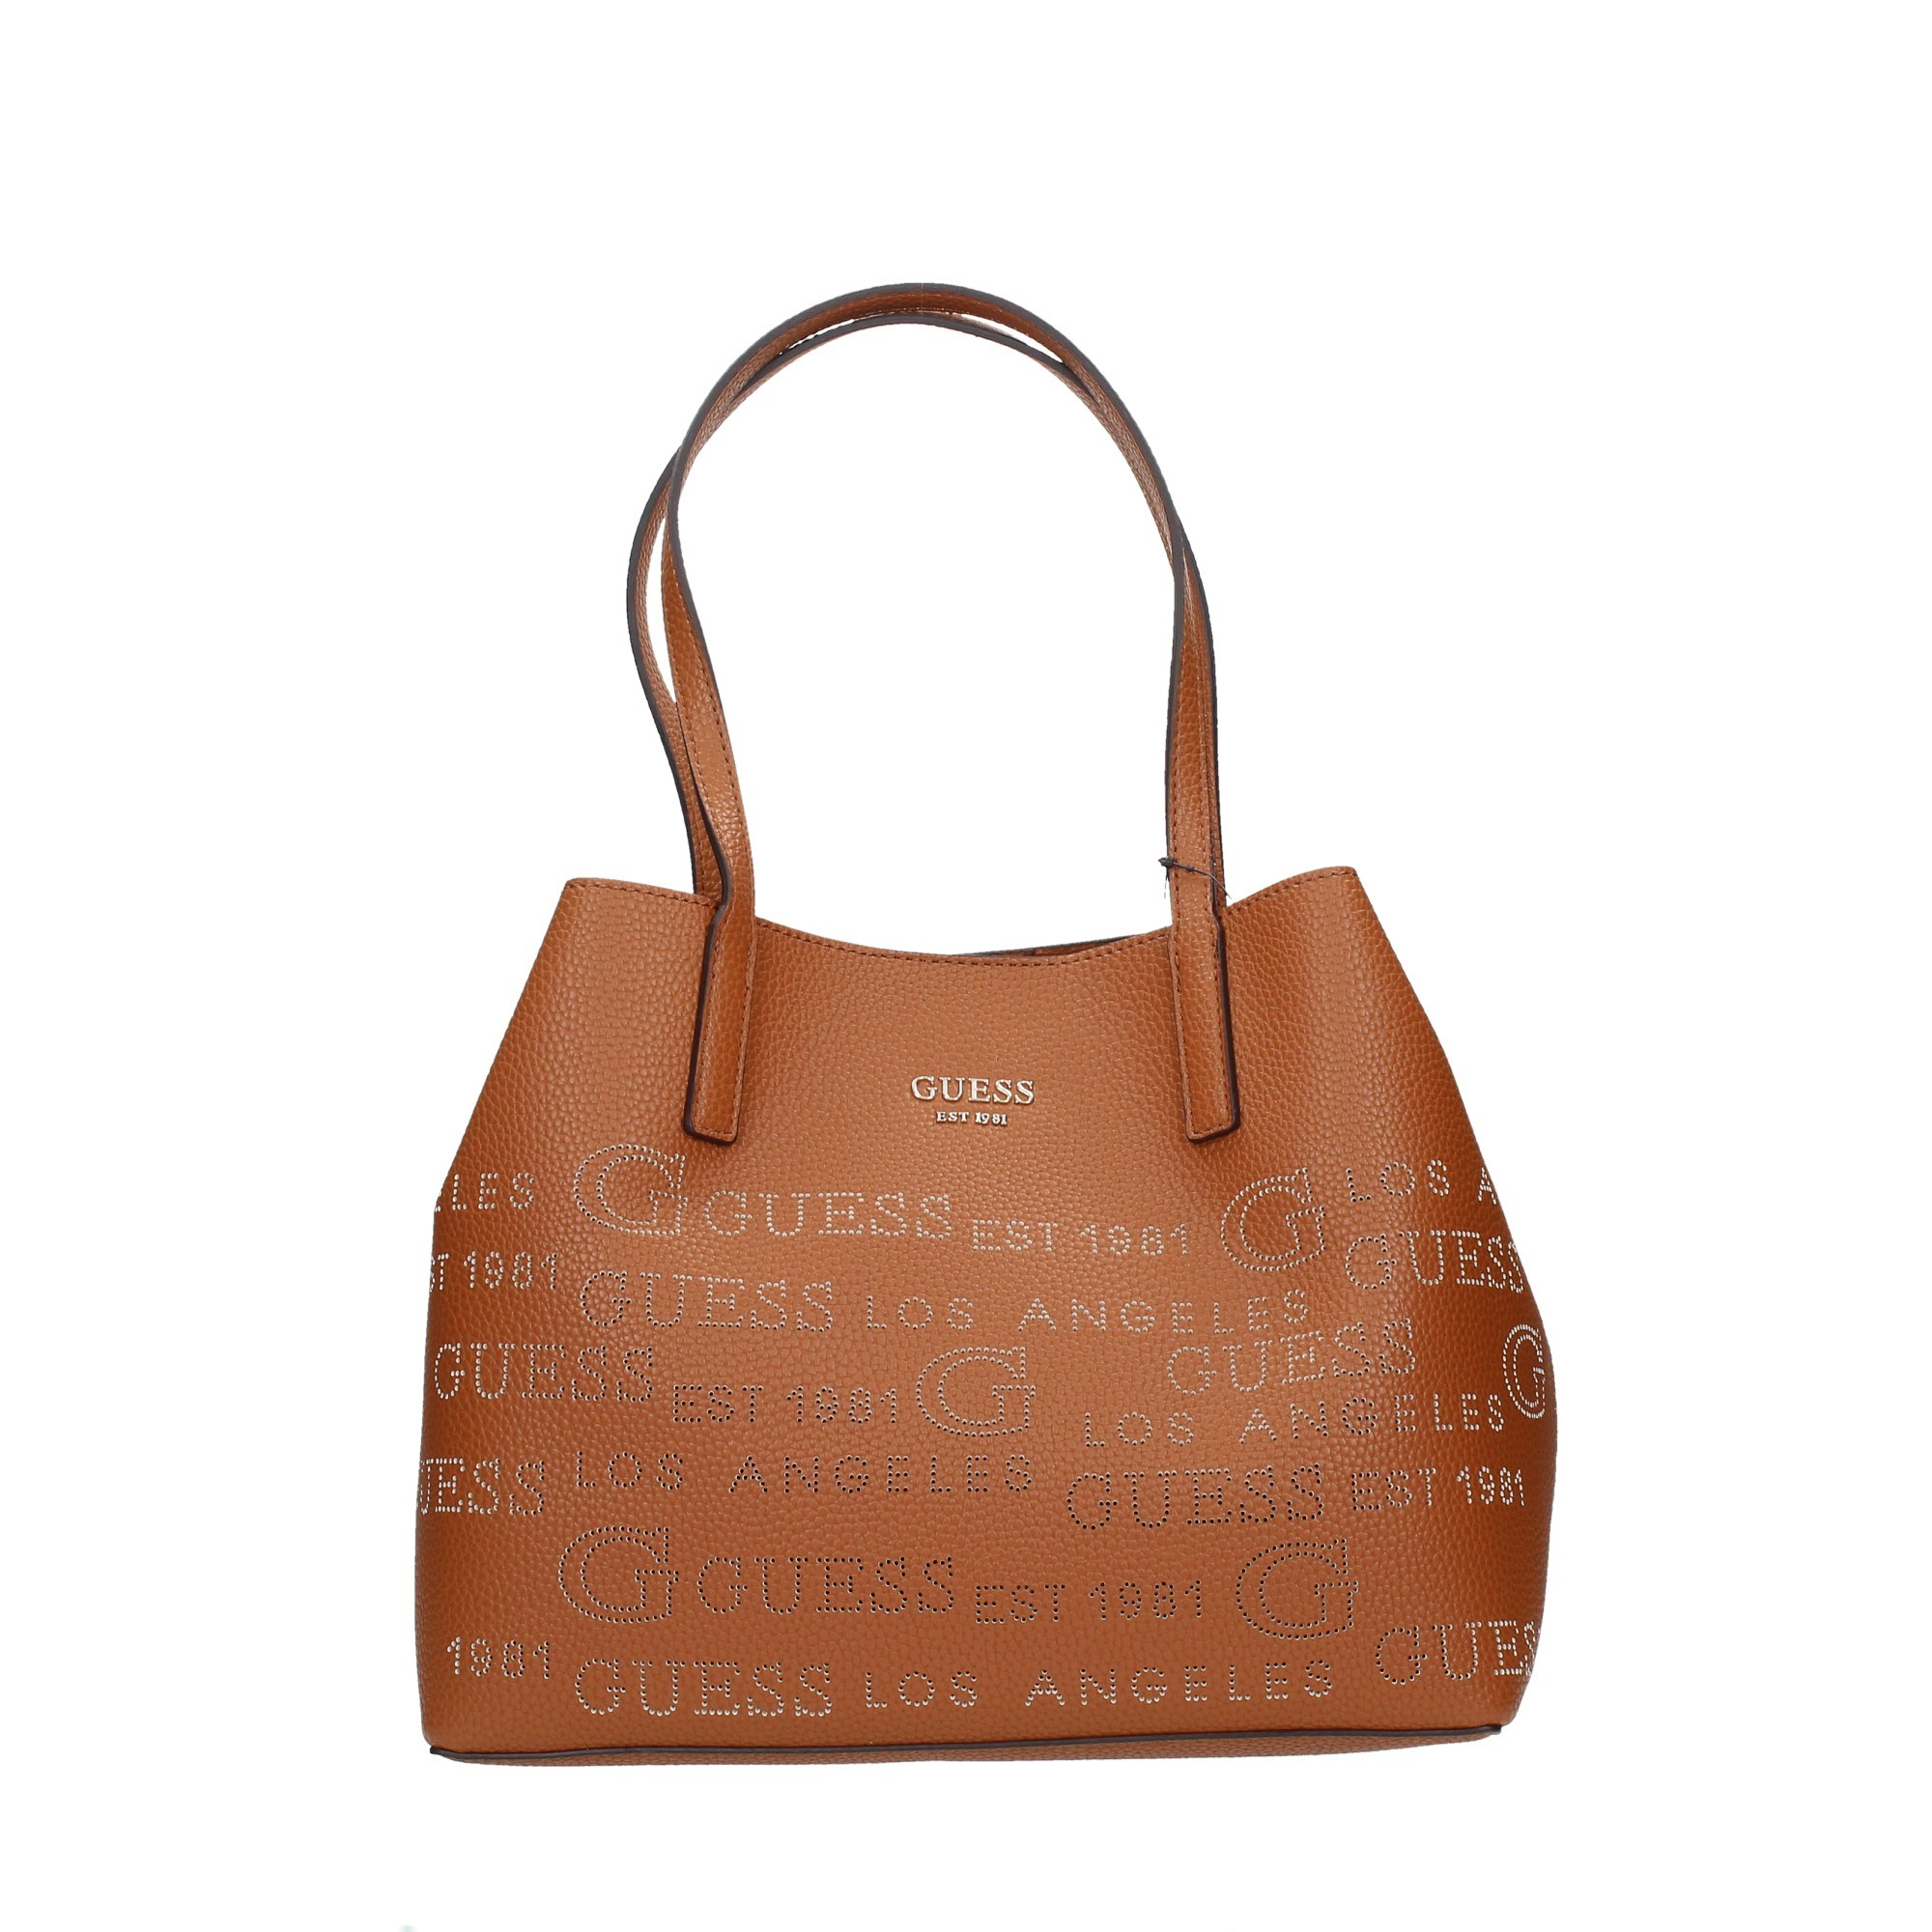 Guess Borse Accessories Women Shoulder Bags Leather HWPF69/95230